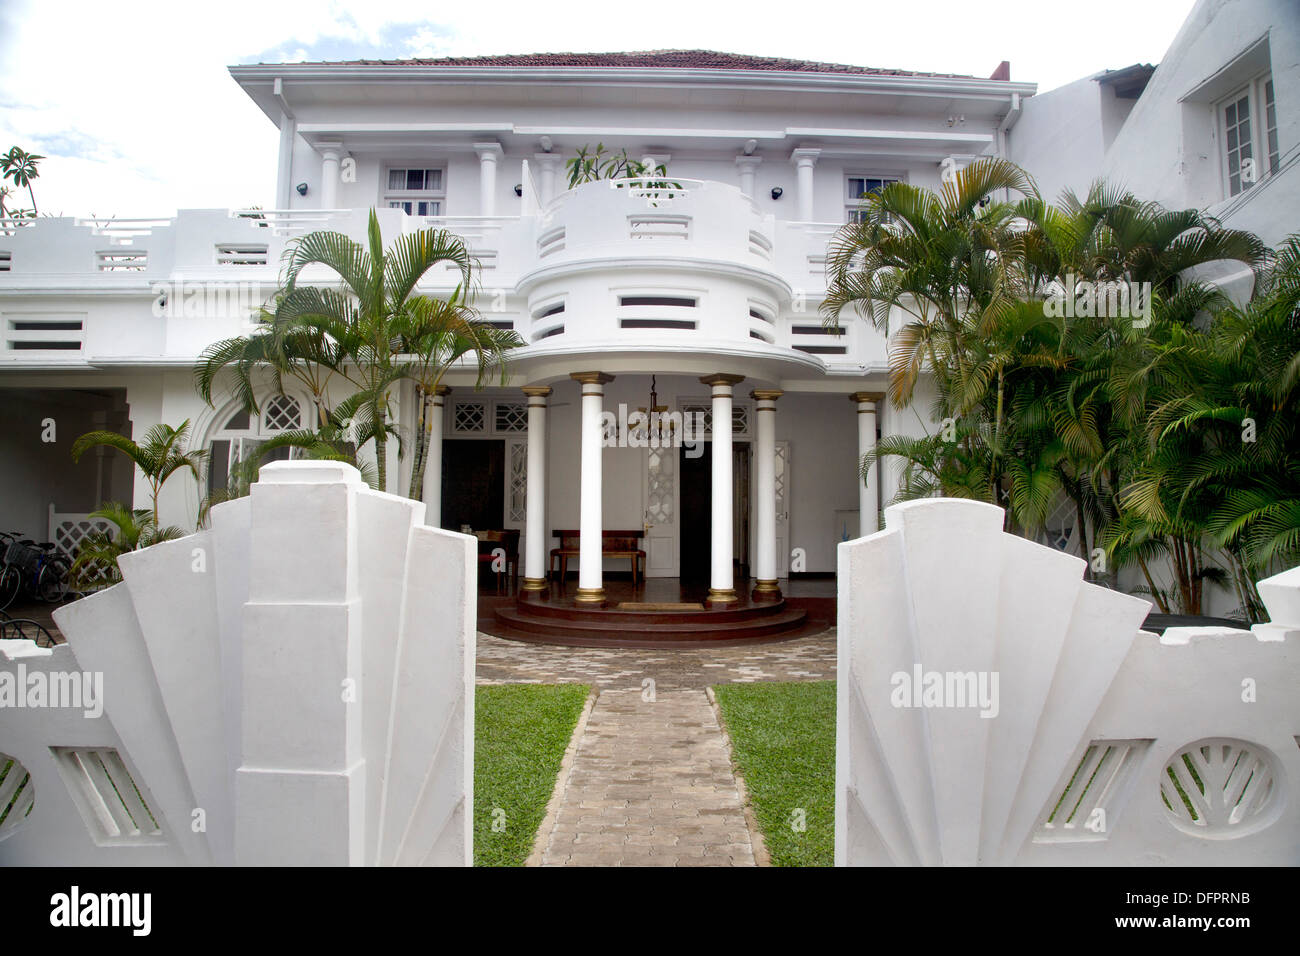 Deco Hotel in Galle Art Deco 1930's style hotel - Stock Image